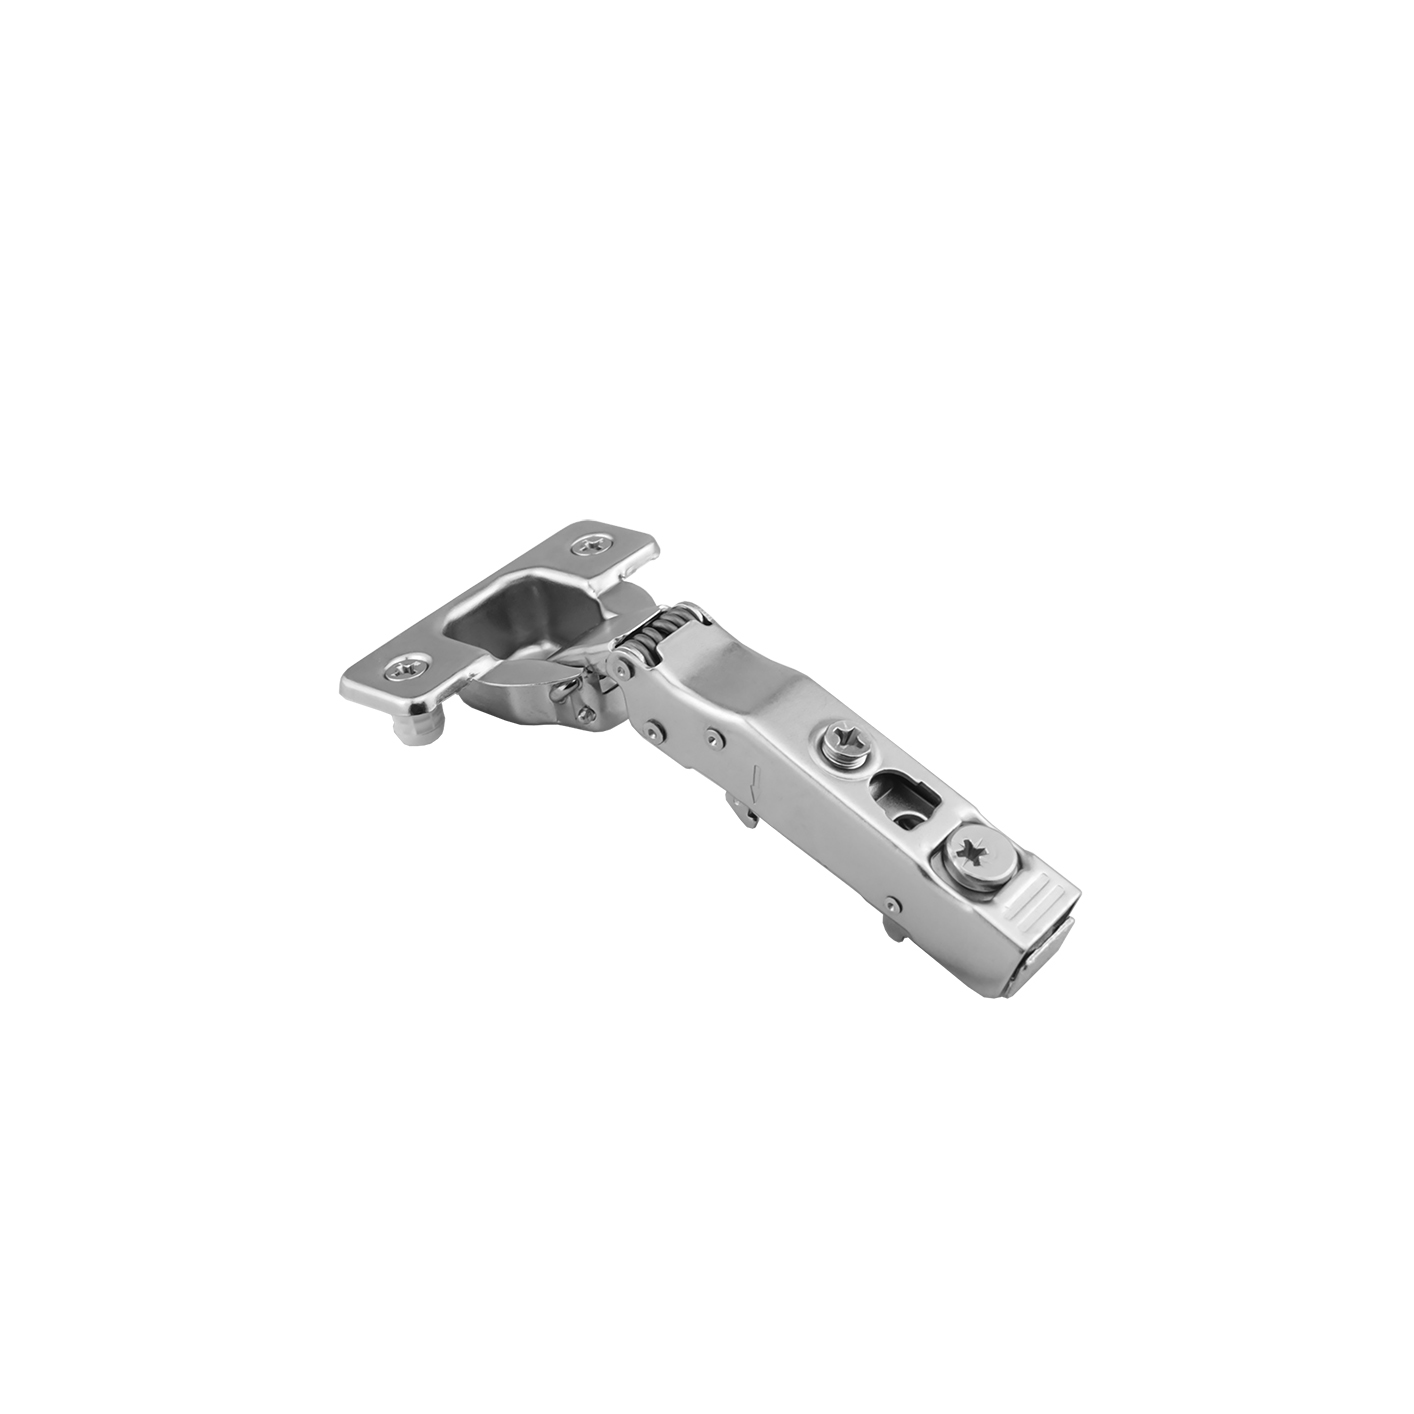 mm also themiracle doorhinges trade close plated hinges photos x cabinet chrome uk polished clever inspire soft closing biz door chic self fire cabinets source kitchen to magnet you ideas